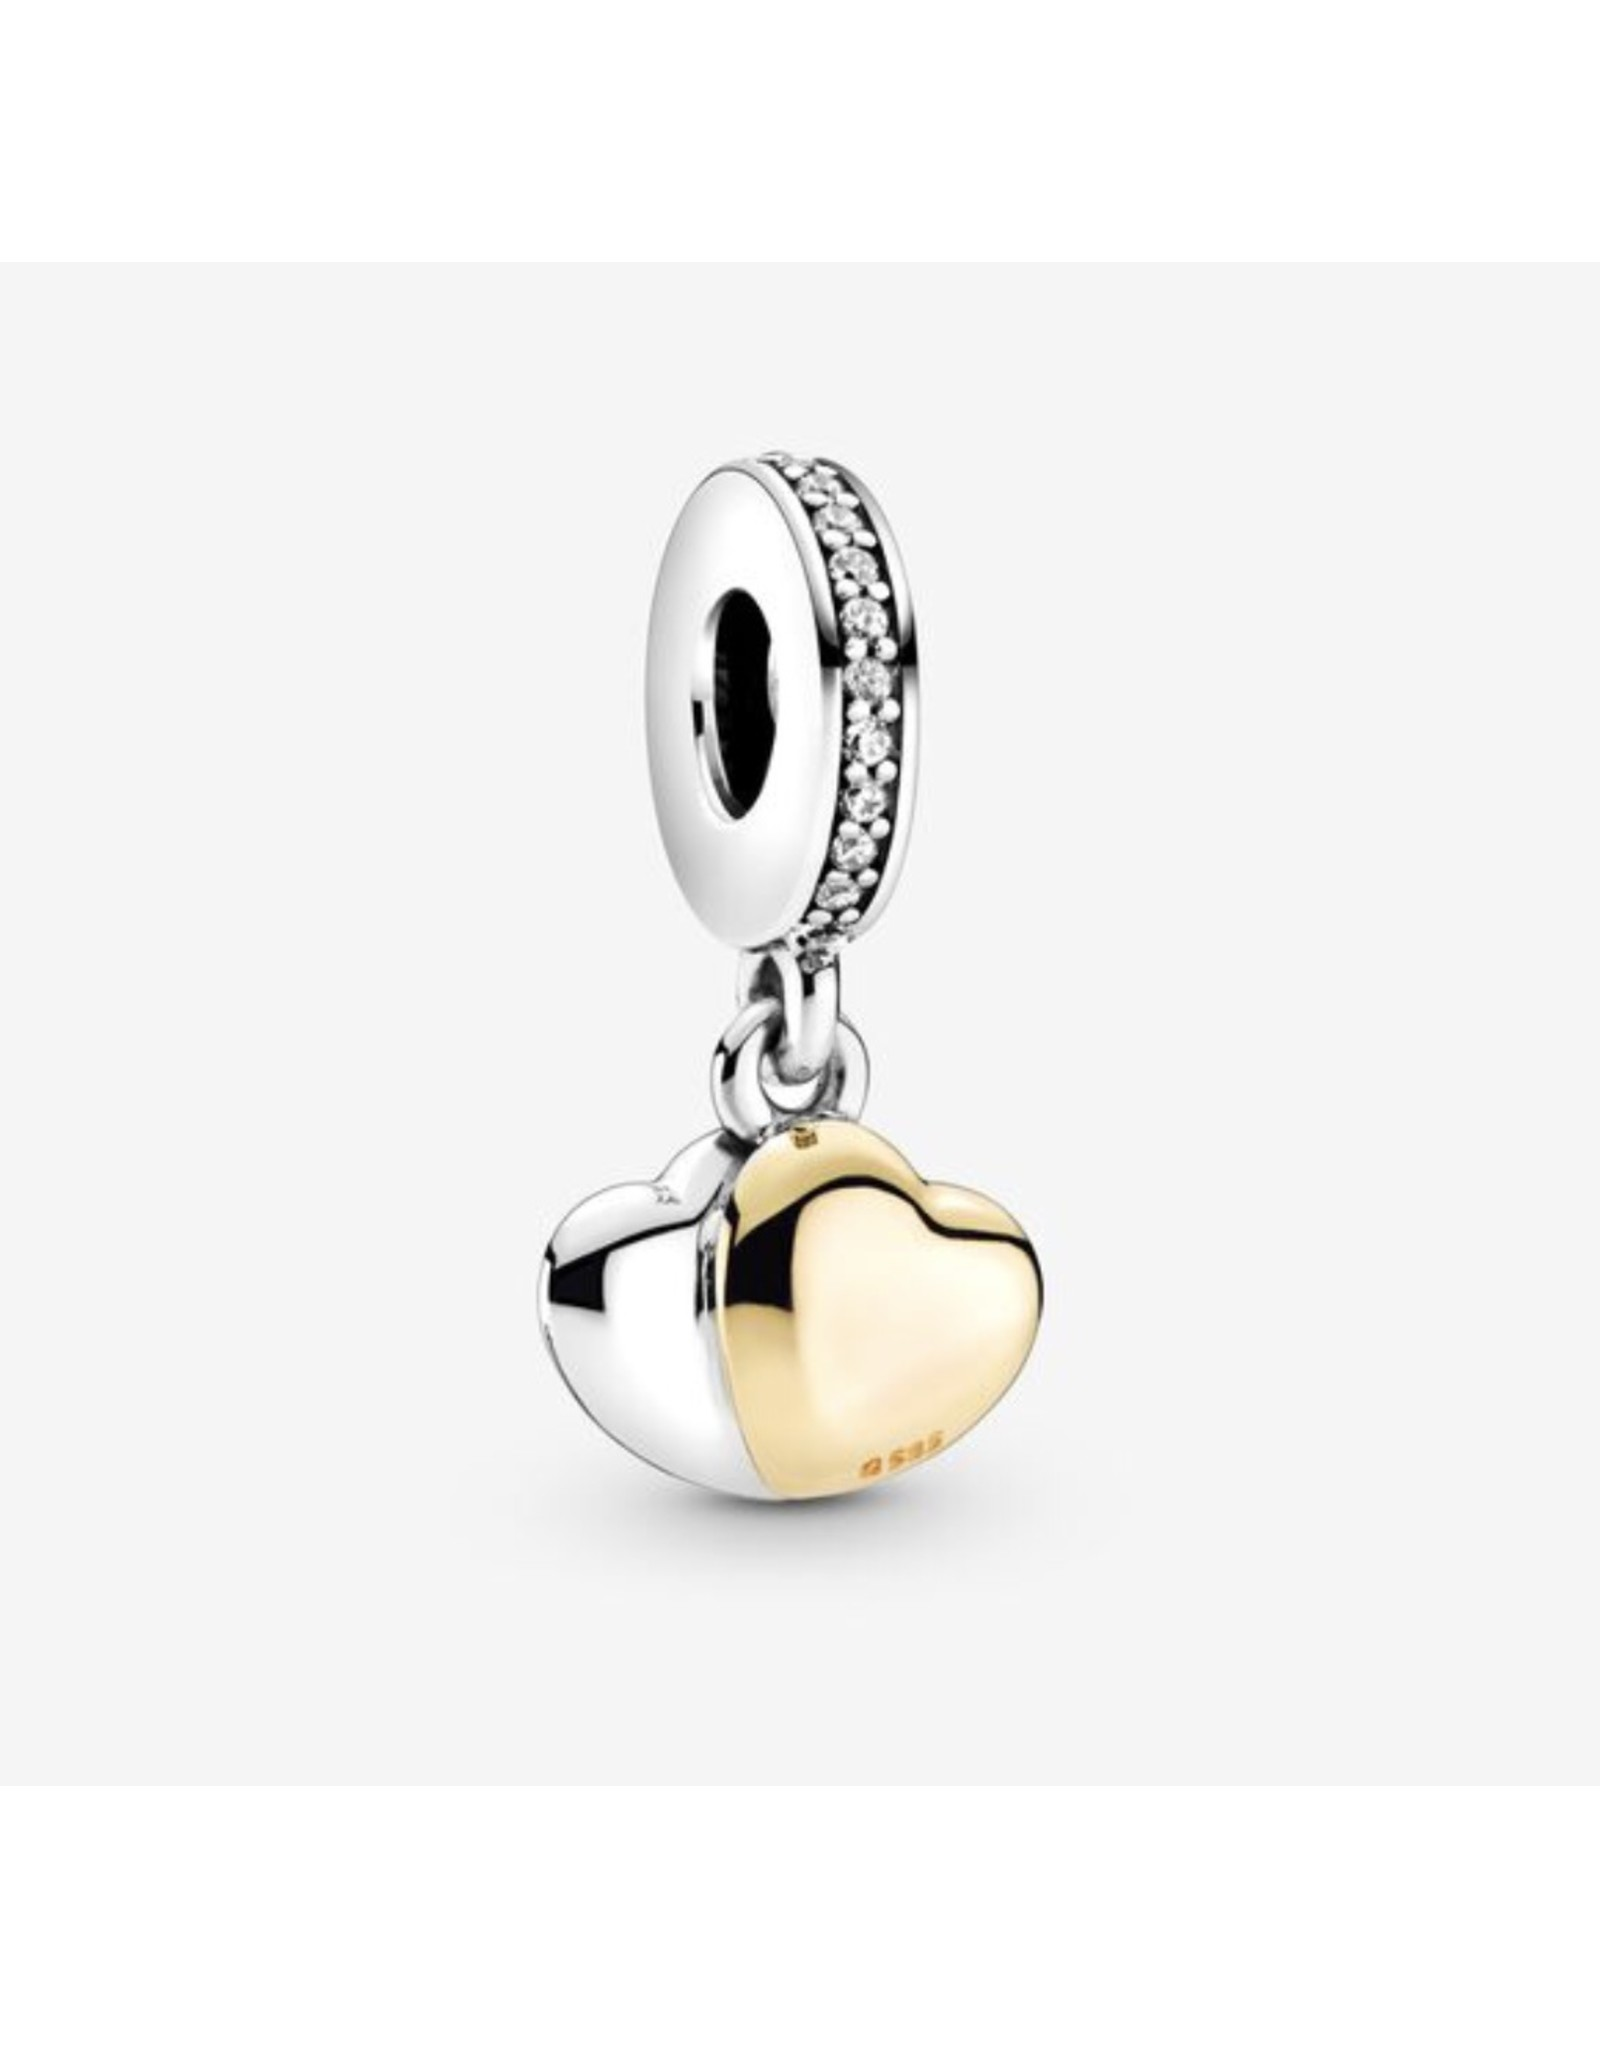 Pandora Pandora Charm,799162C01,Double Hearth With 14K Gold